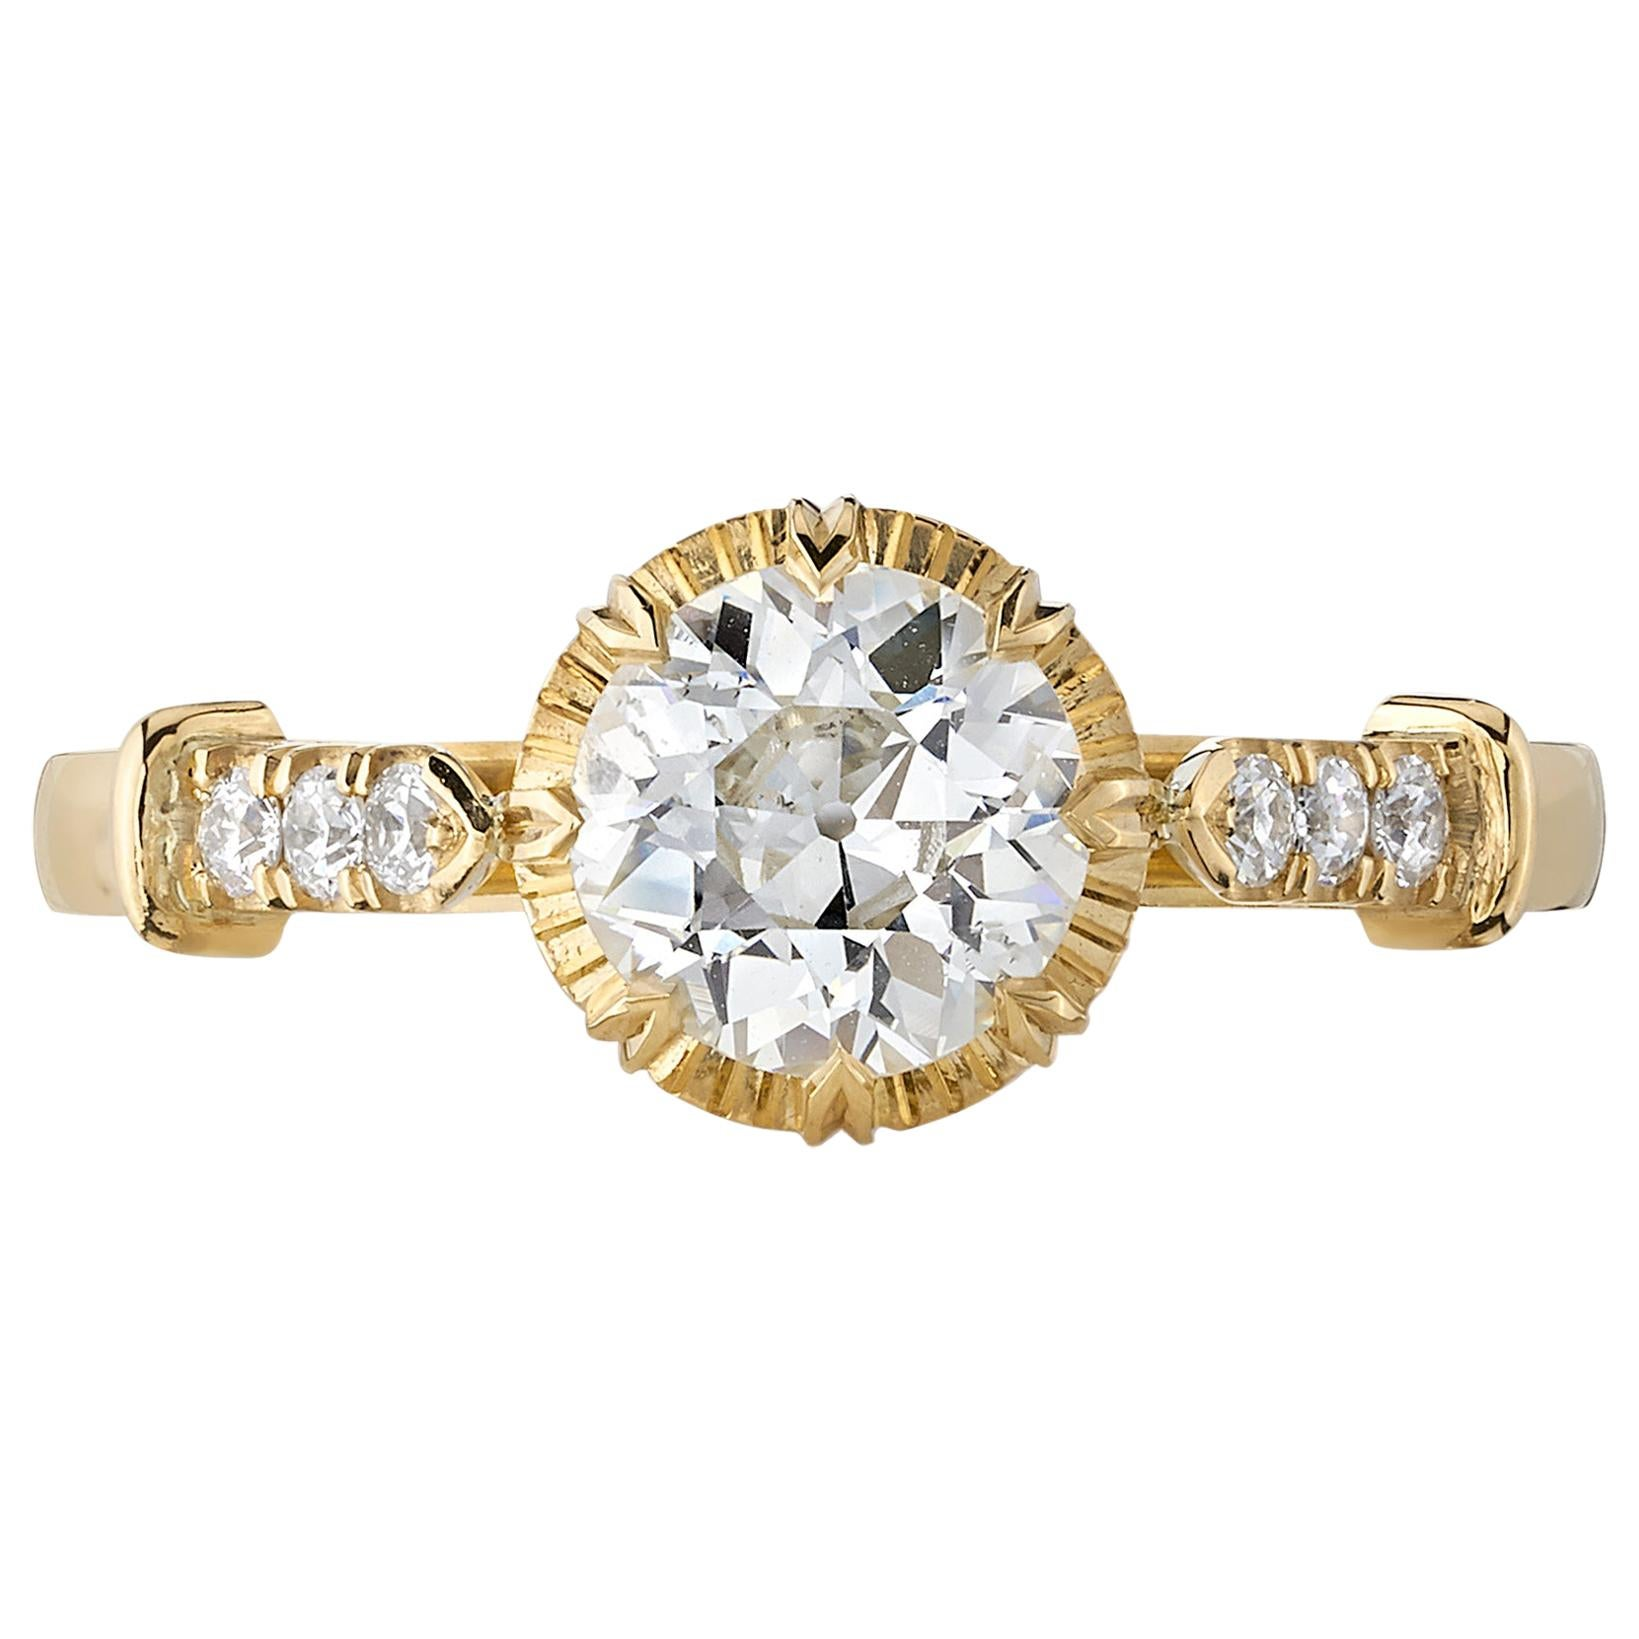 0.85 Carat Old European Cut Diamond Set in a Yellow Gold Engagement Ring